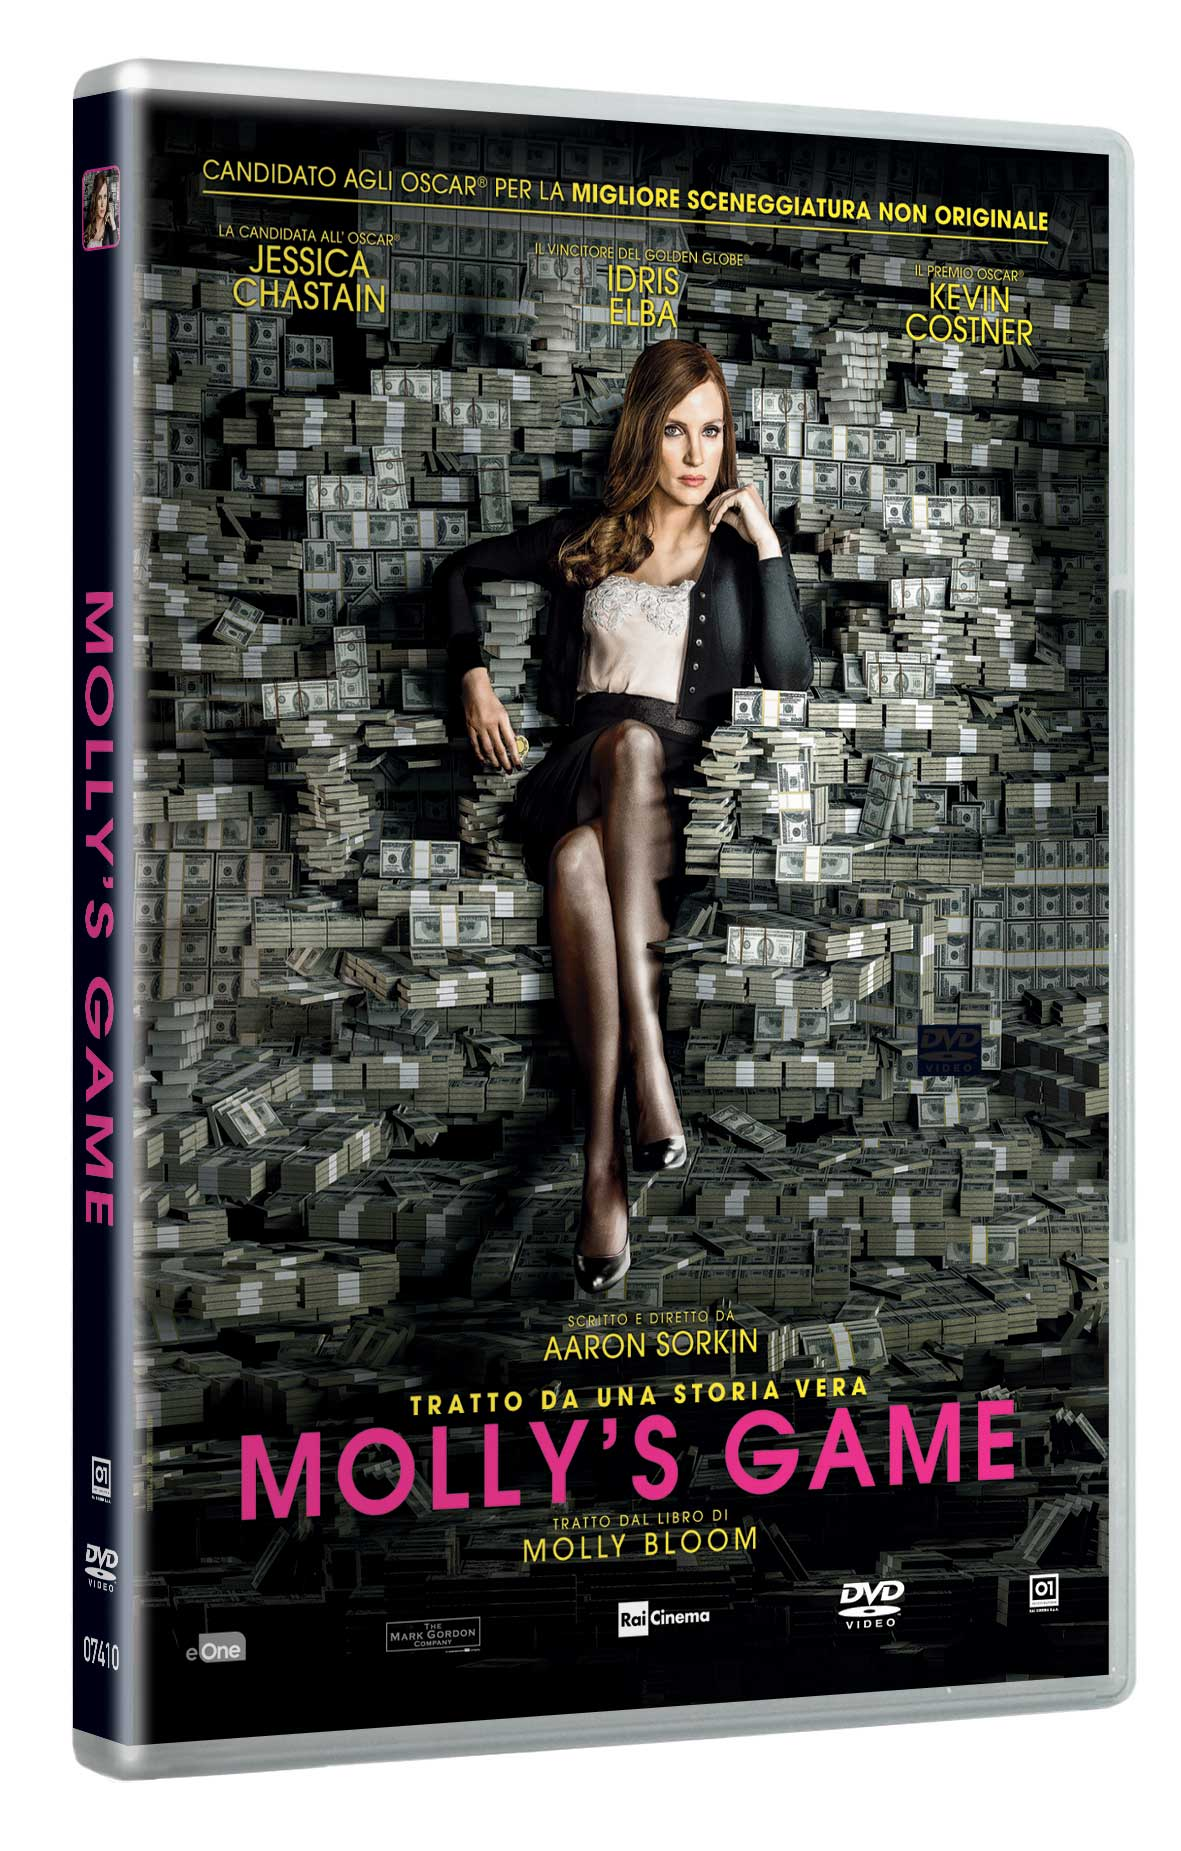 MOLLY'S GAME (DVD)